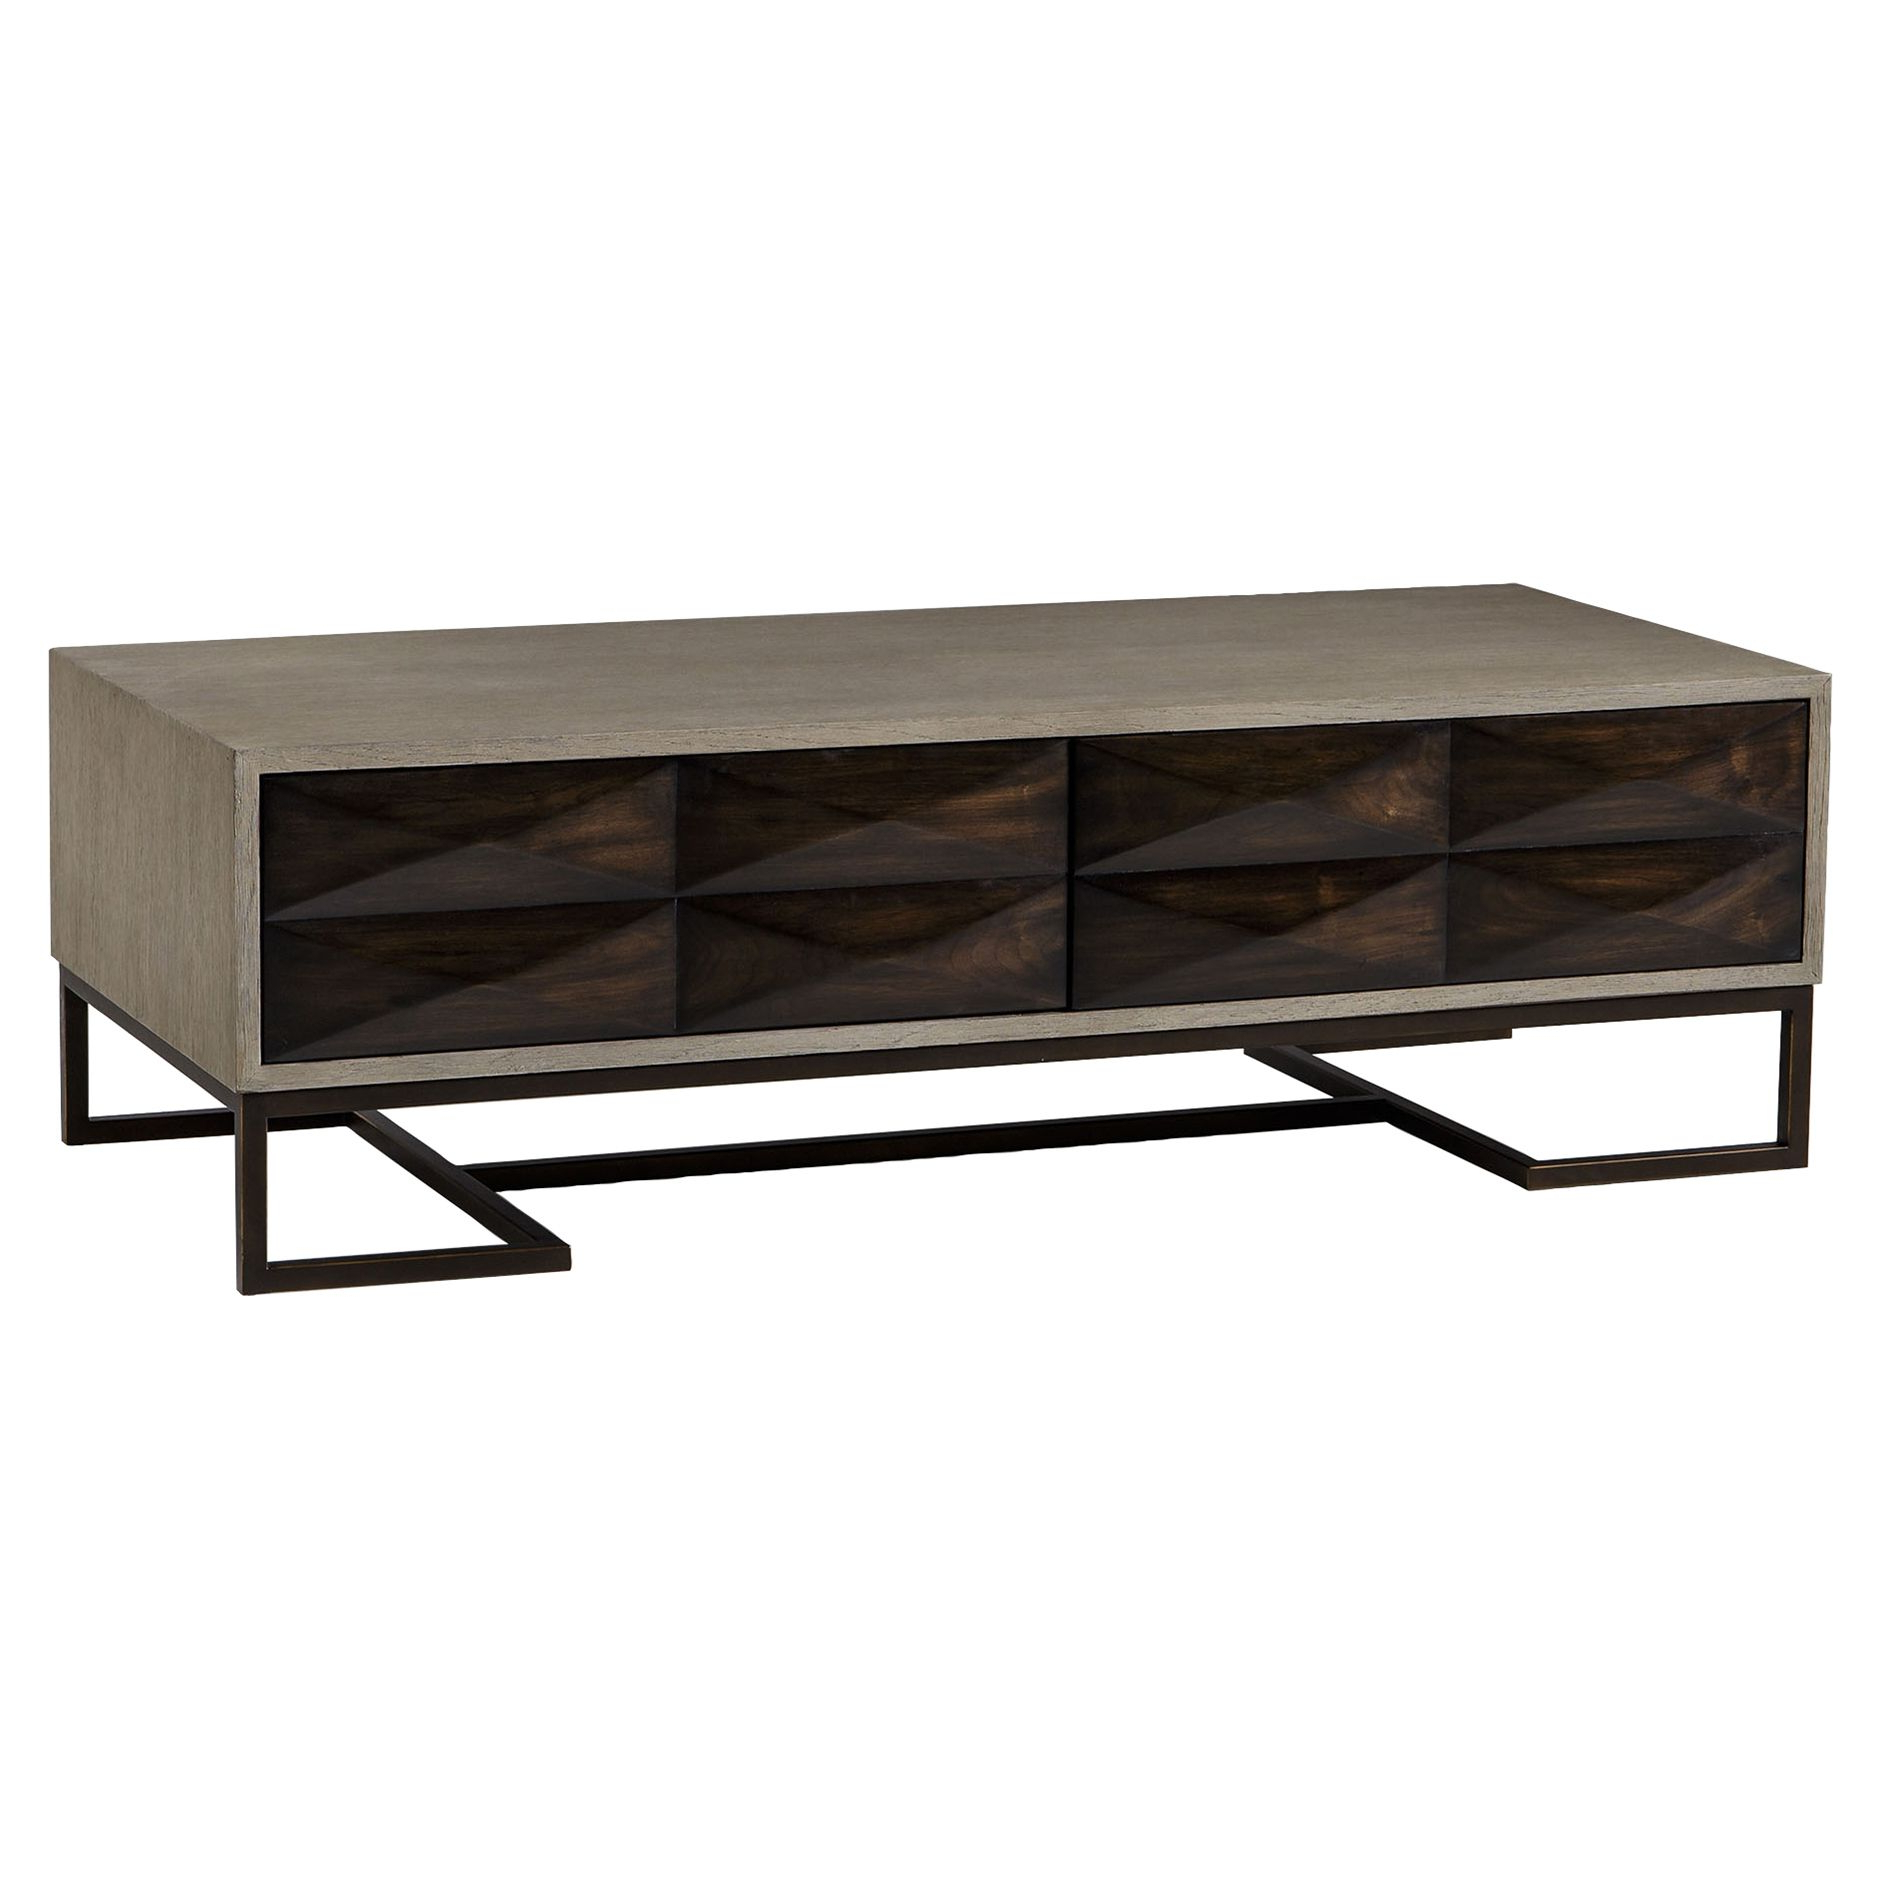 Casey Industrial Loft Open Grey Grain 2 Drawer Cofee Table In 2018 With Regard To Well Known Natural 2 Drawer Shutter Coffee Tables (Gallery 12 of 20)